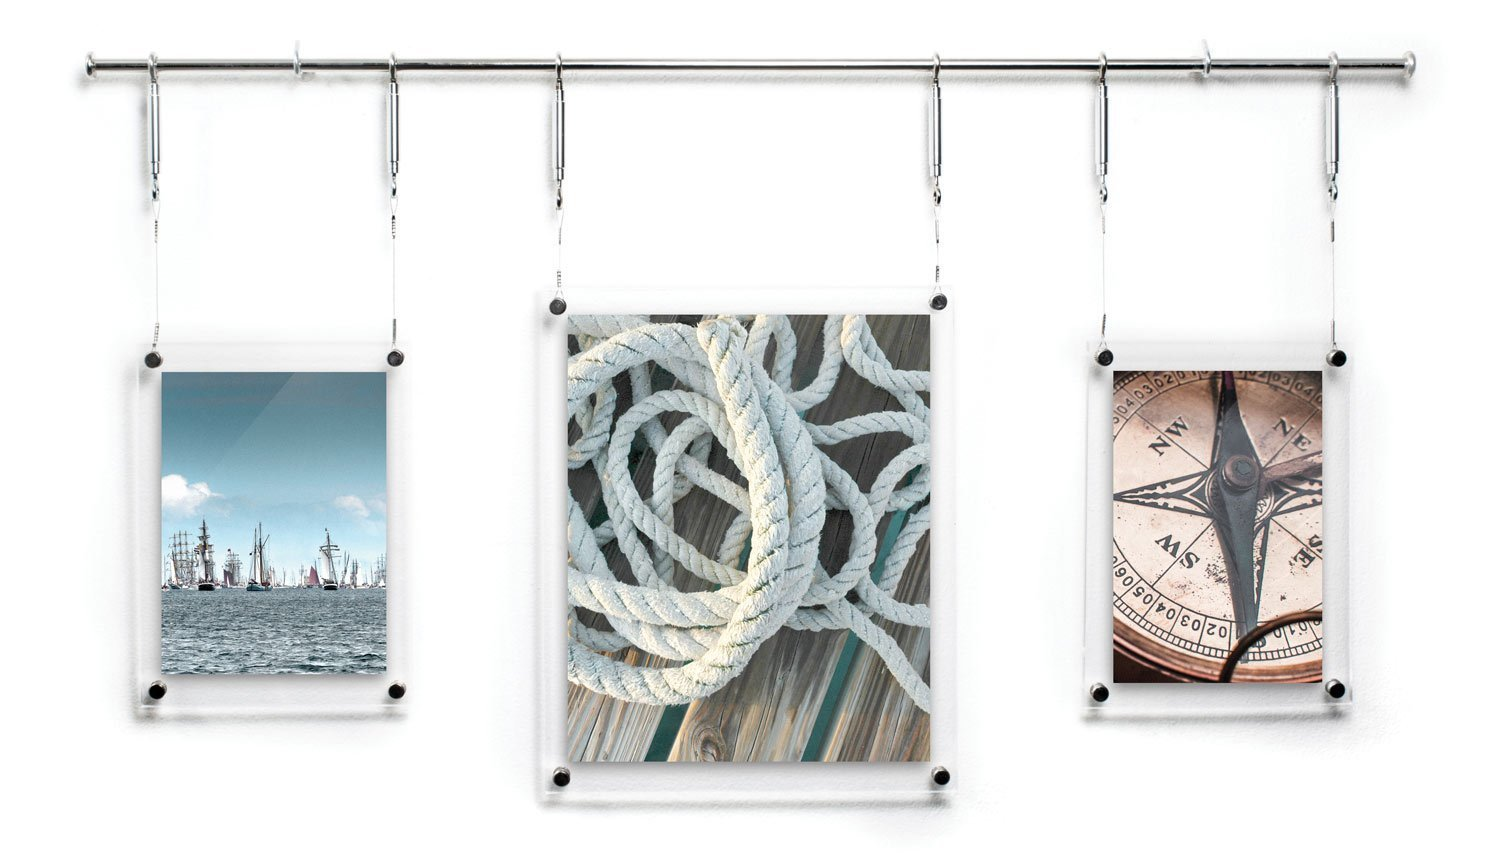 HIGHWIRE Picture Frame Display, Set of Three Hanging / Wall Mounted Photos (5x7'', 8x10'', 5x7''), Acrylic, Steel & Aluminum by HIGHWIRE